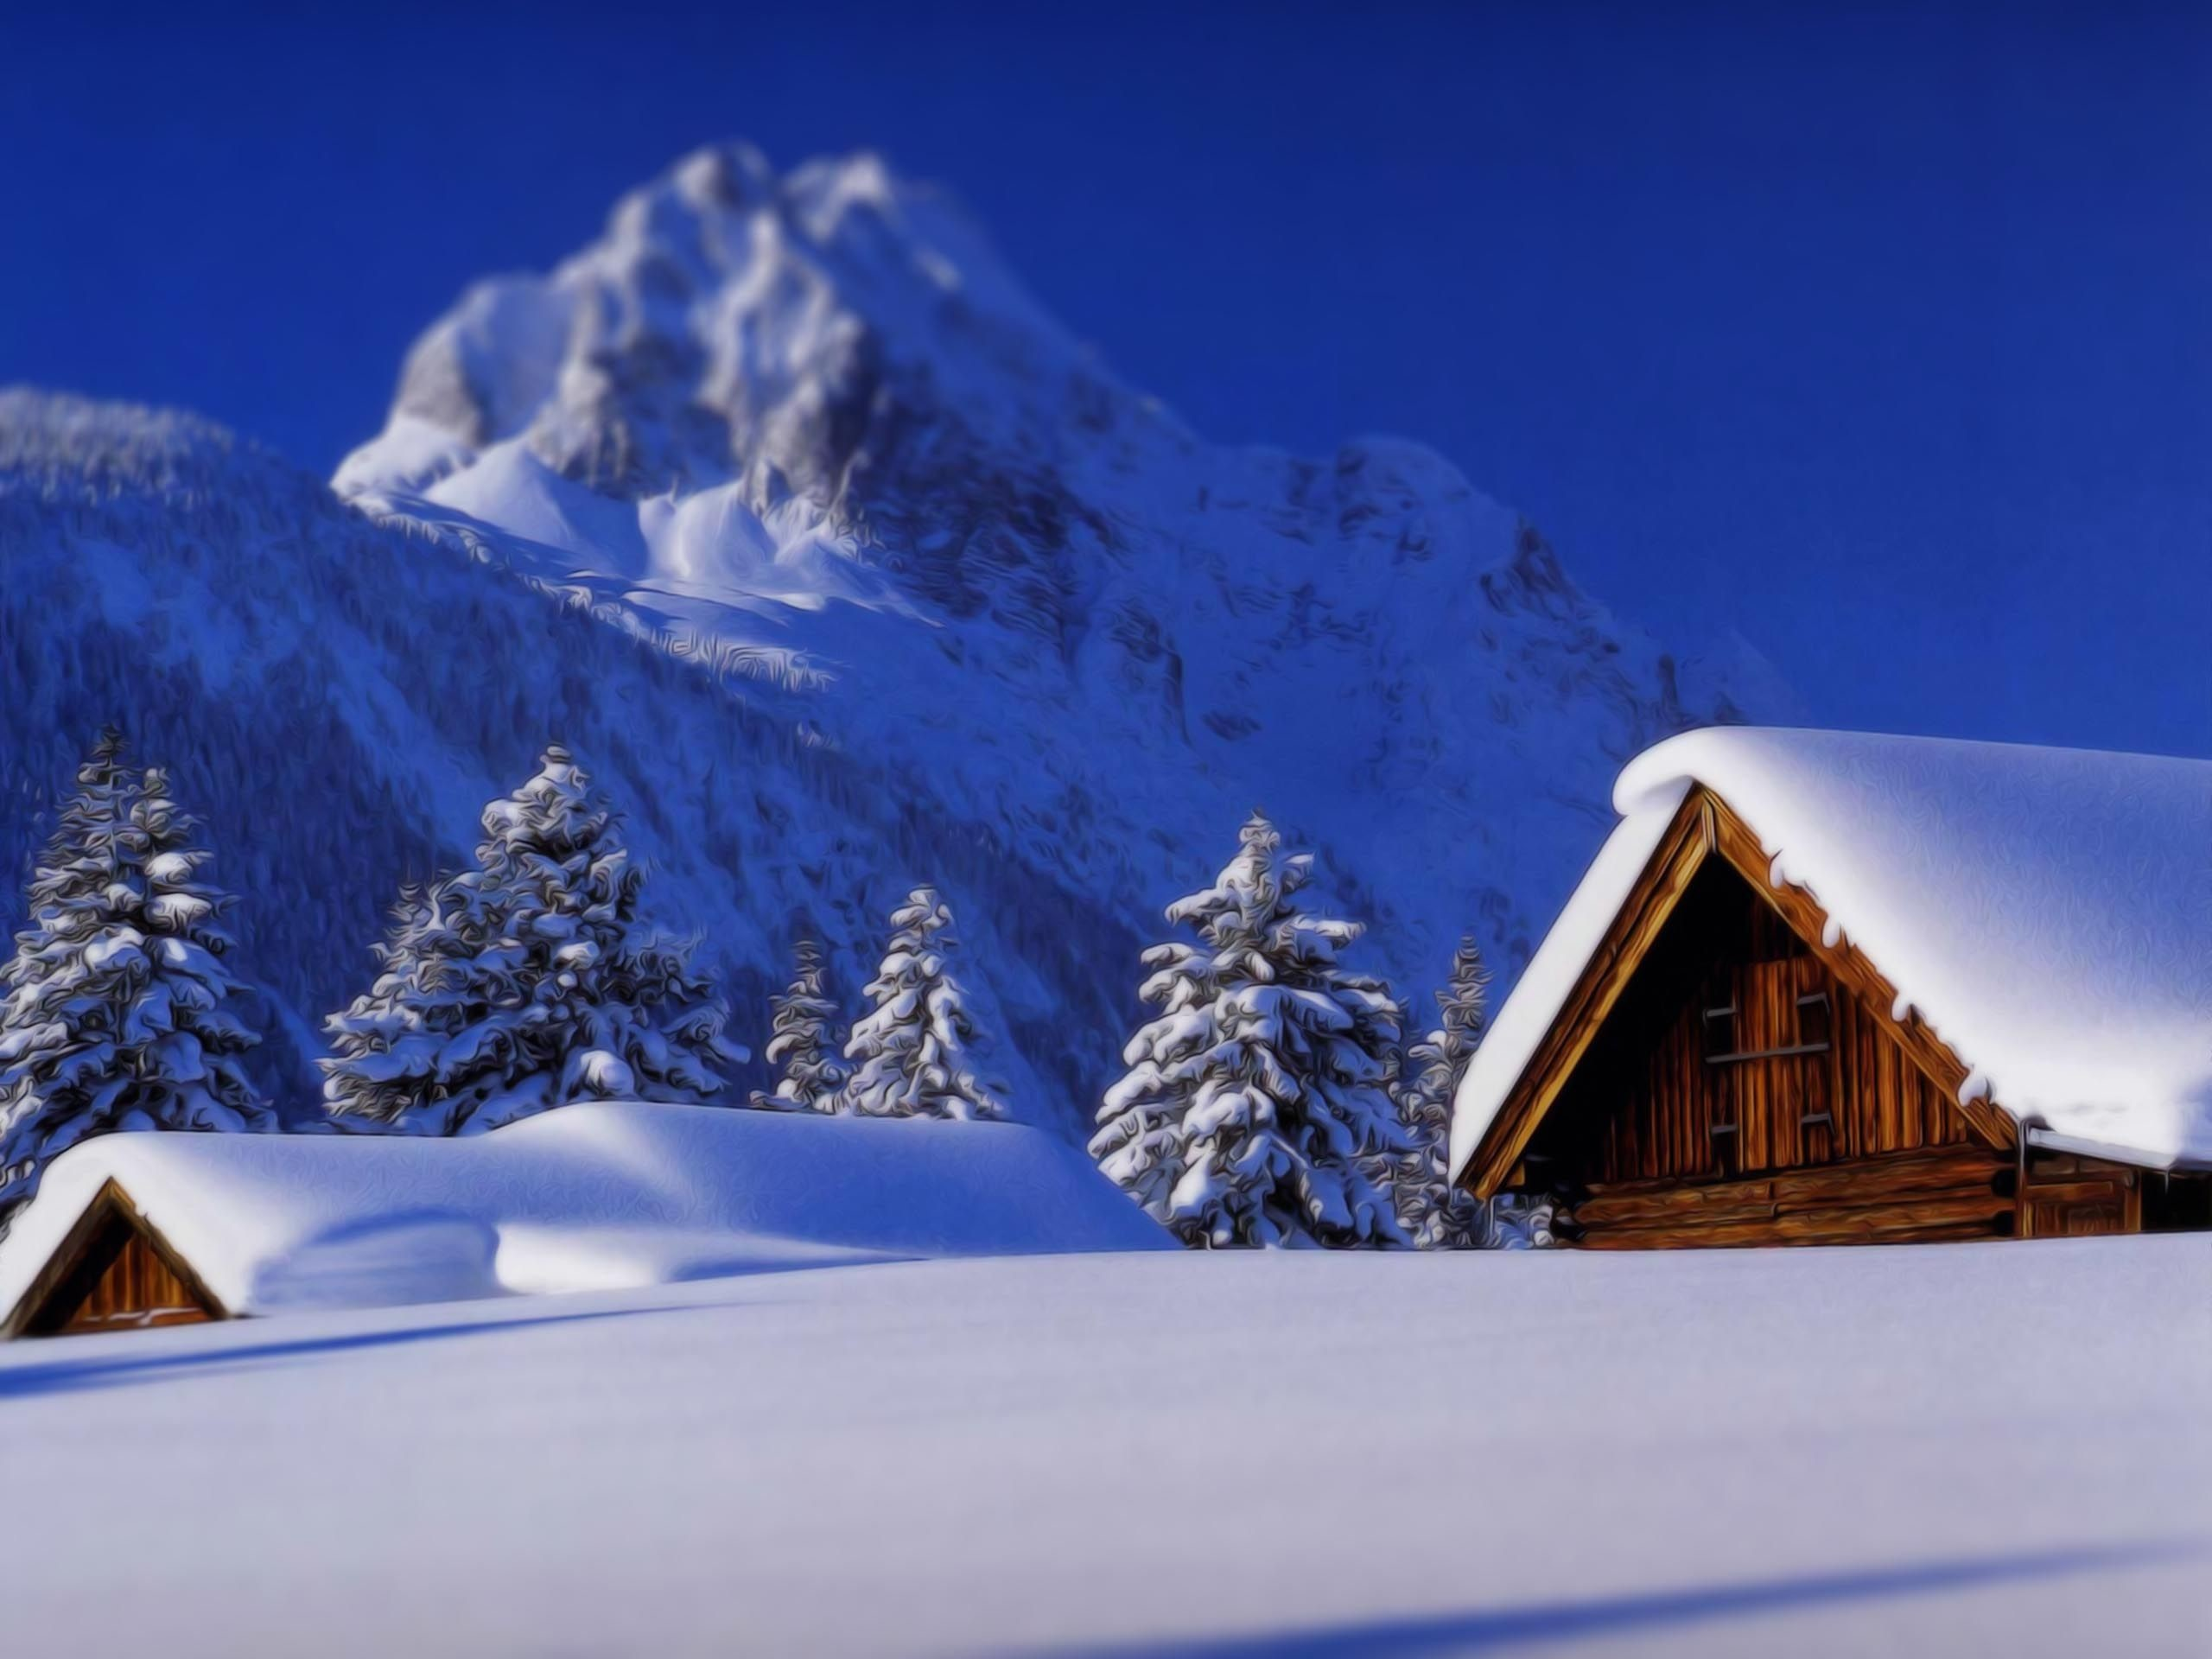 2560x1920 Christmas Nature Scenes Wallpapers. Mountain cabin Winter ...